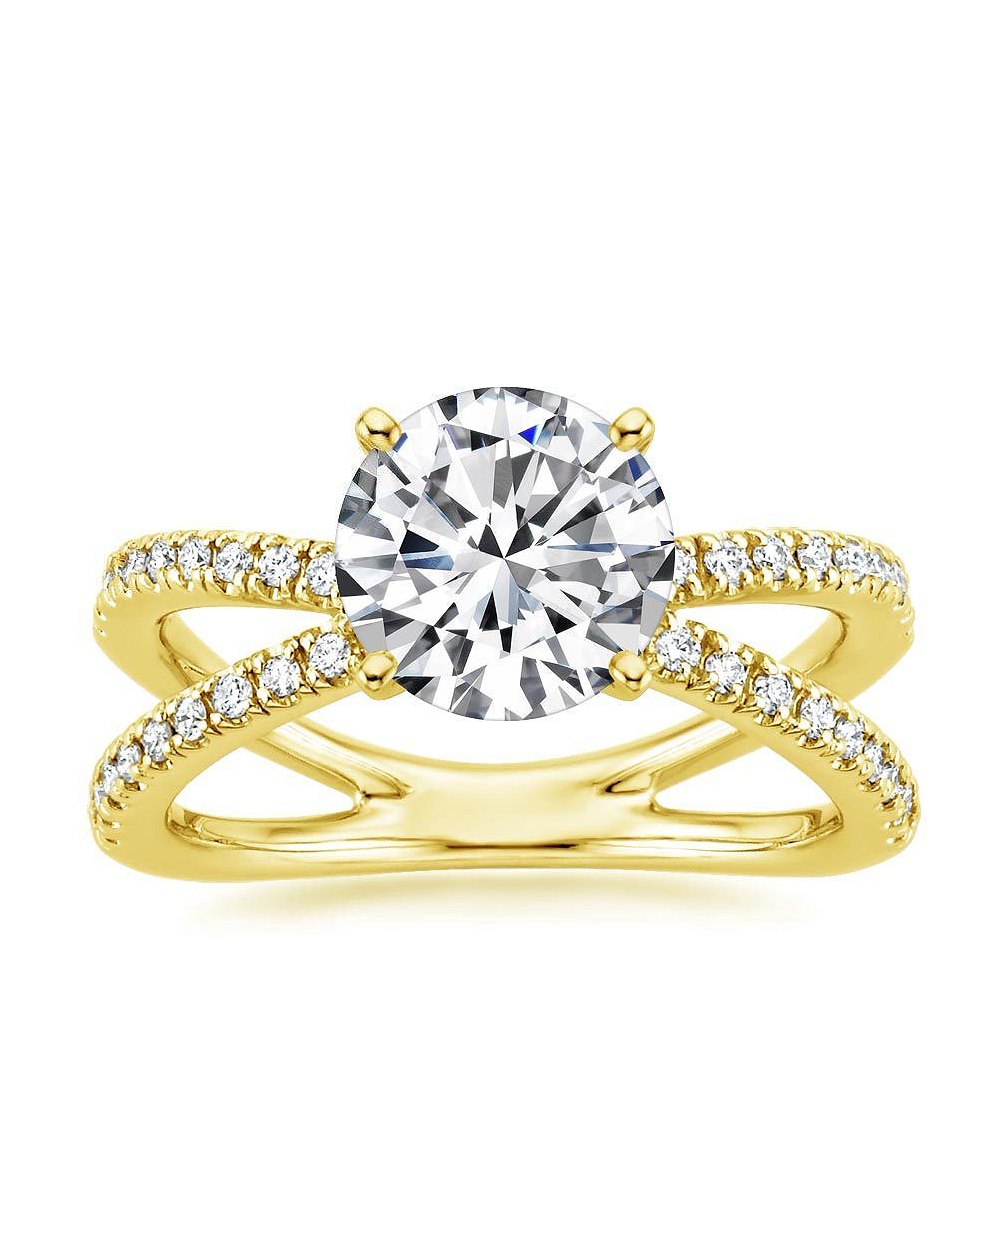 brilliant-earth-bisou-yellow-gold-engagement-ring-double-band-0816.jpg